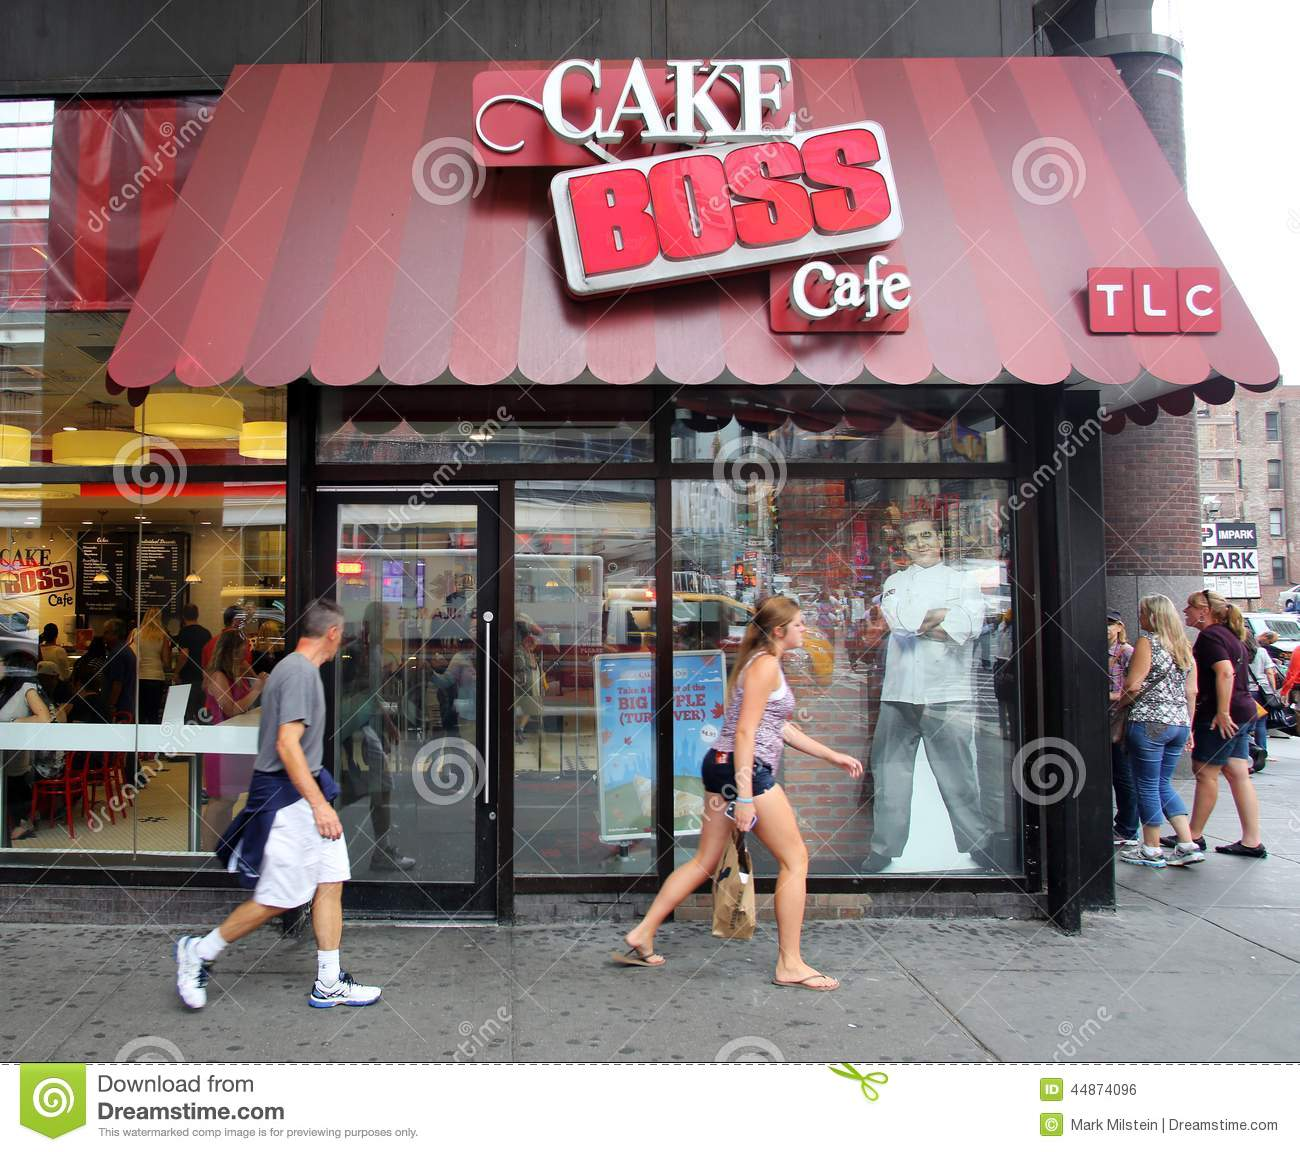 Cake Boss Cafe New York